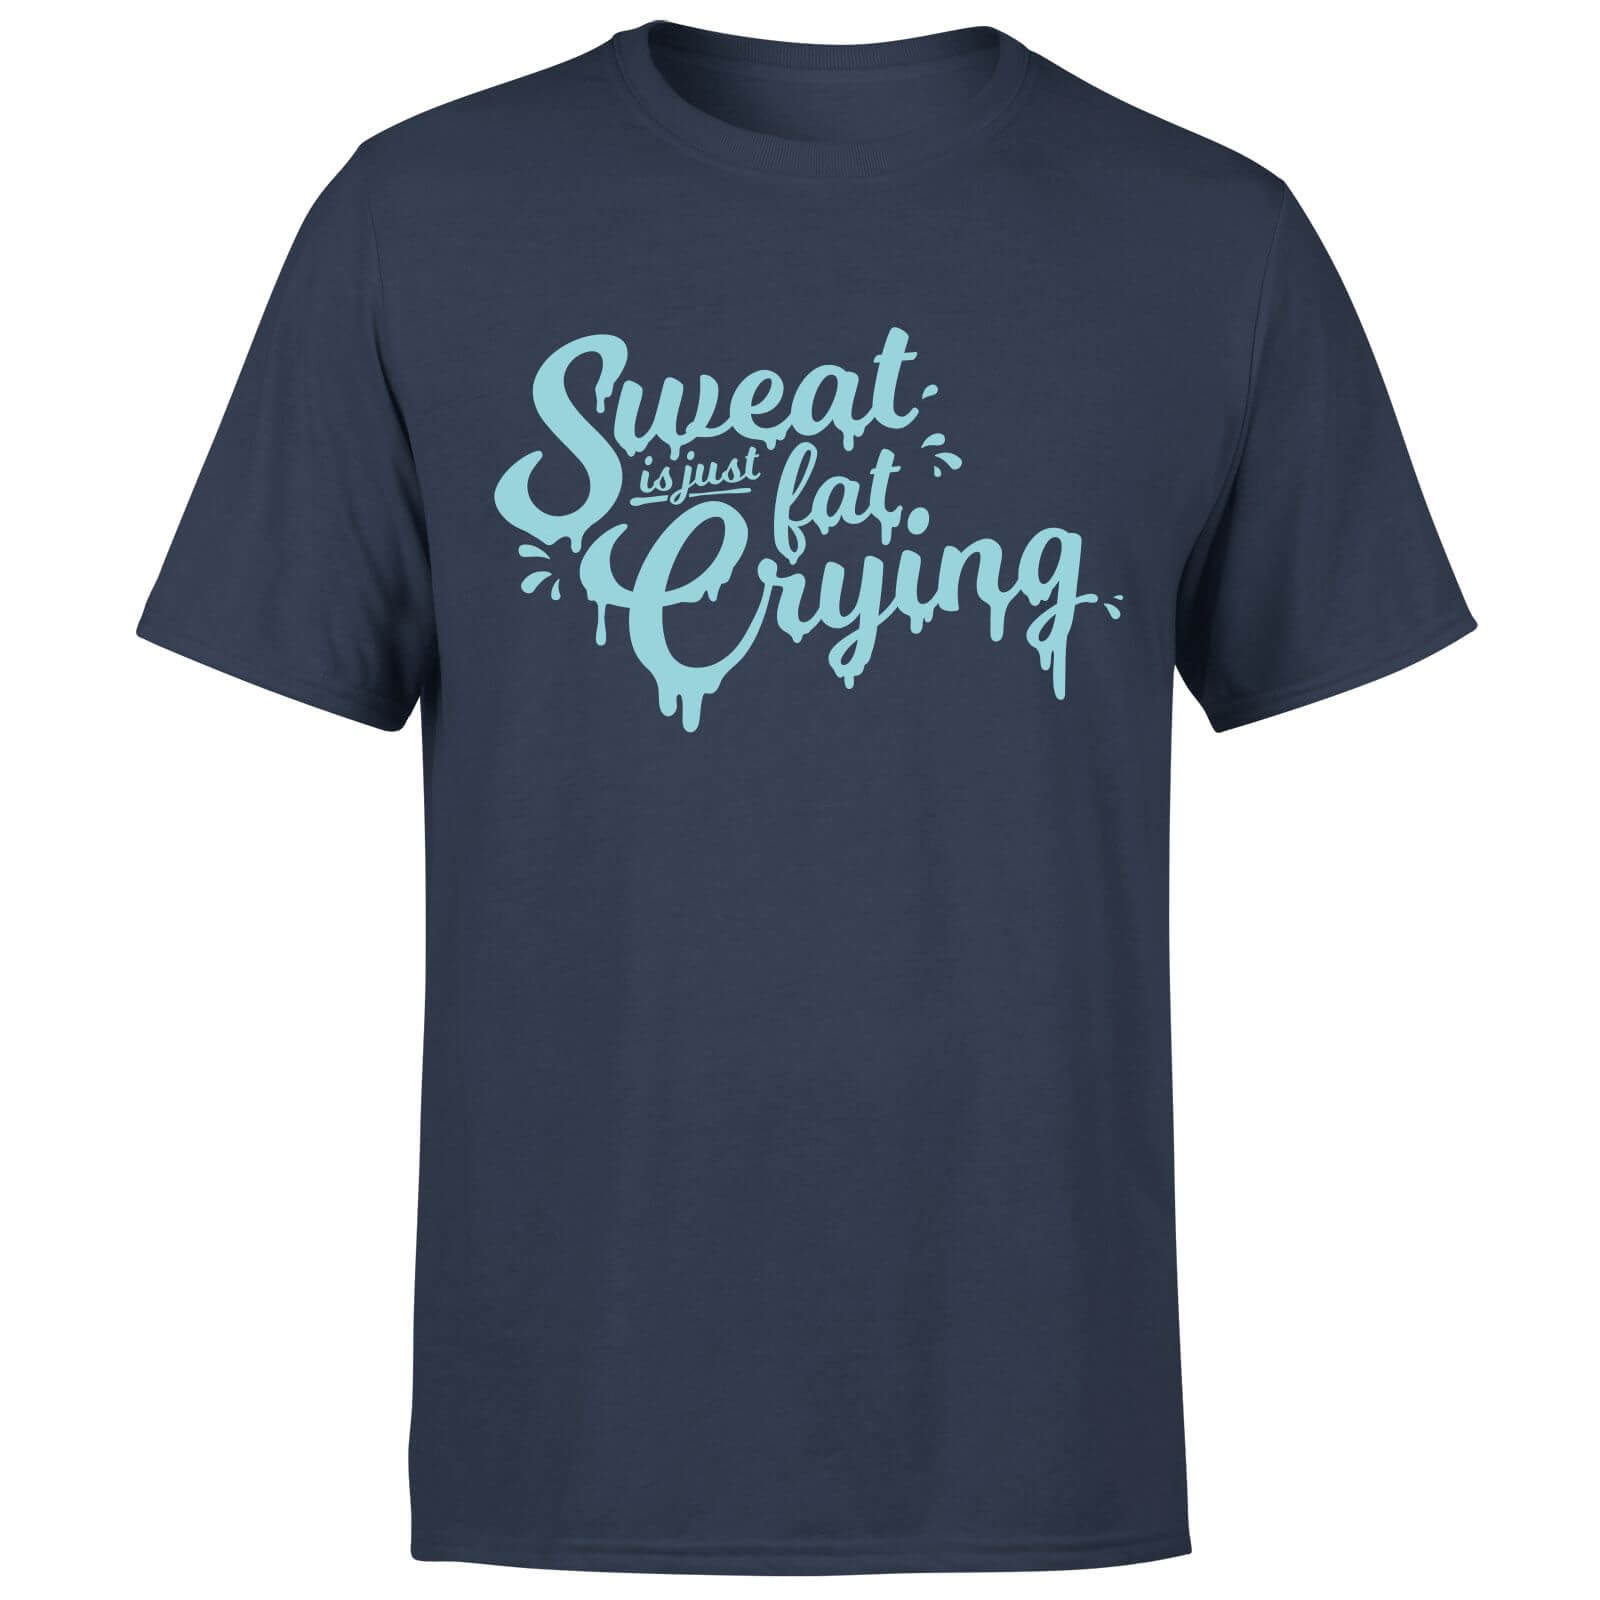 Sweat Is Just Fat Crying T-Shirt - Navy